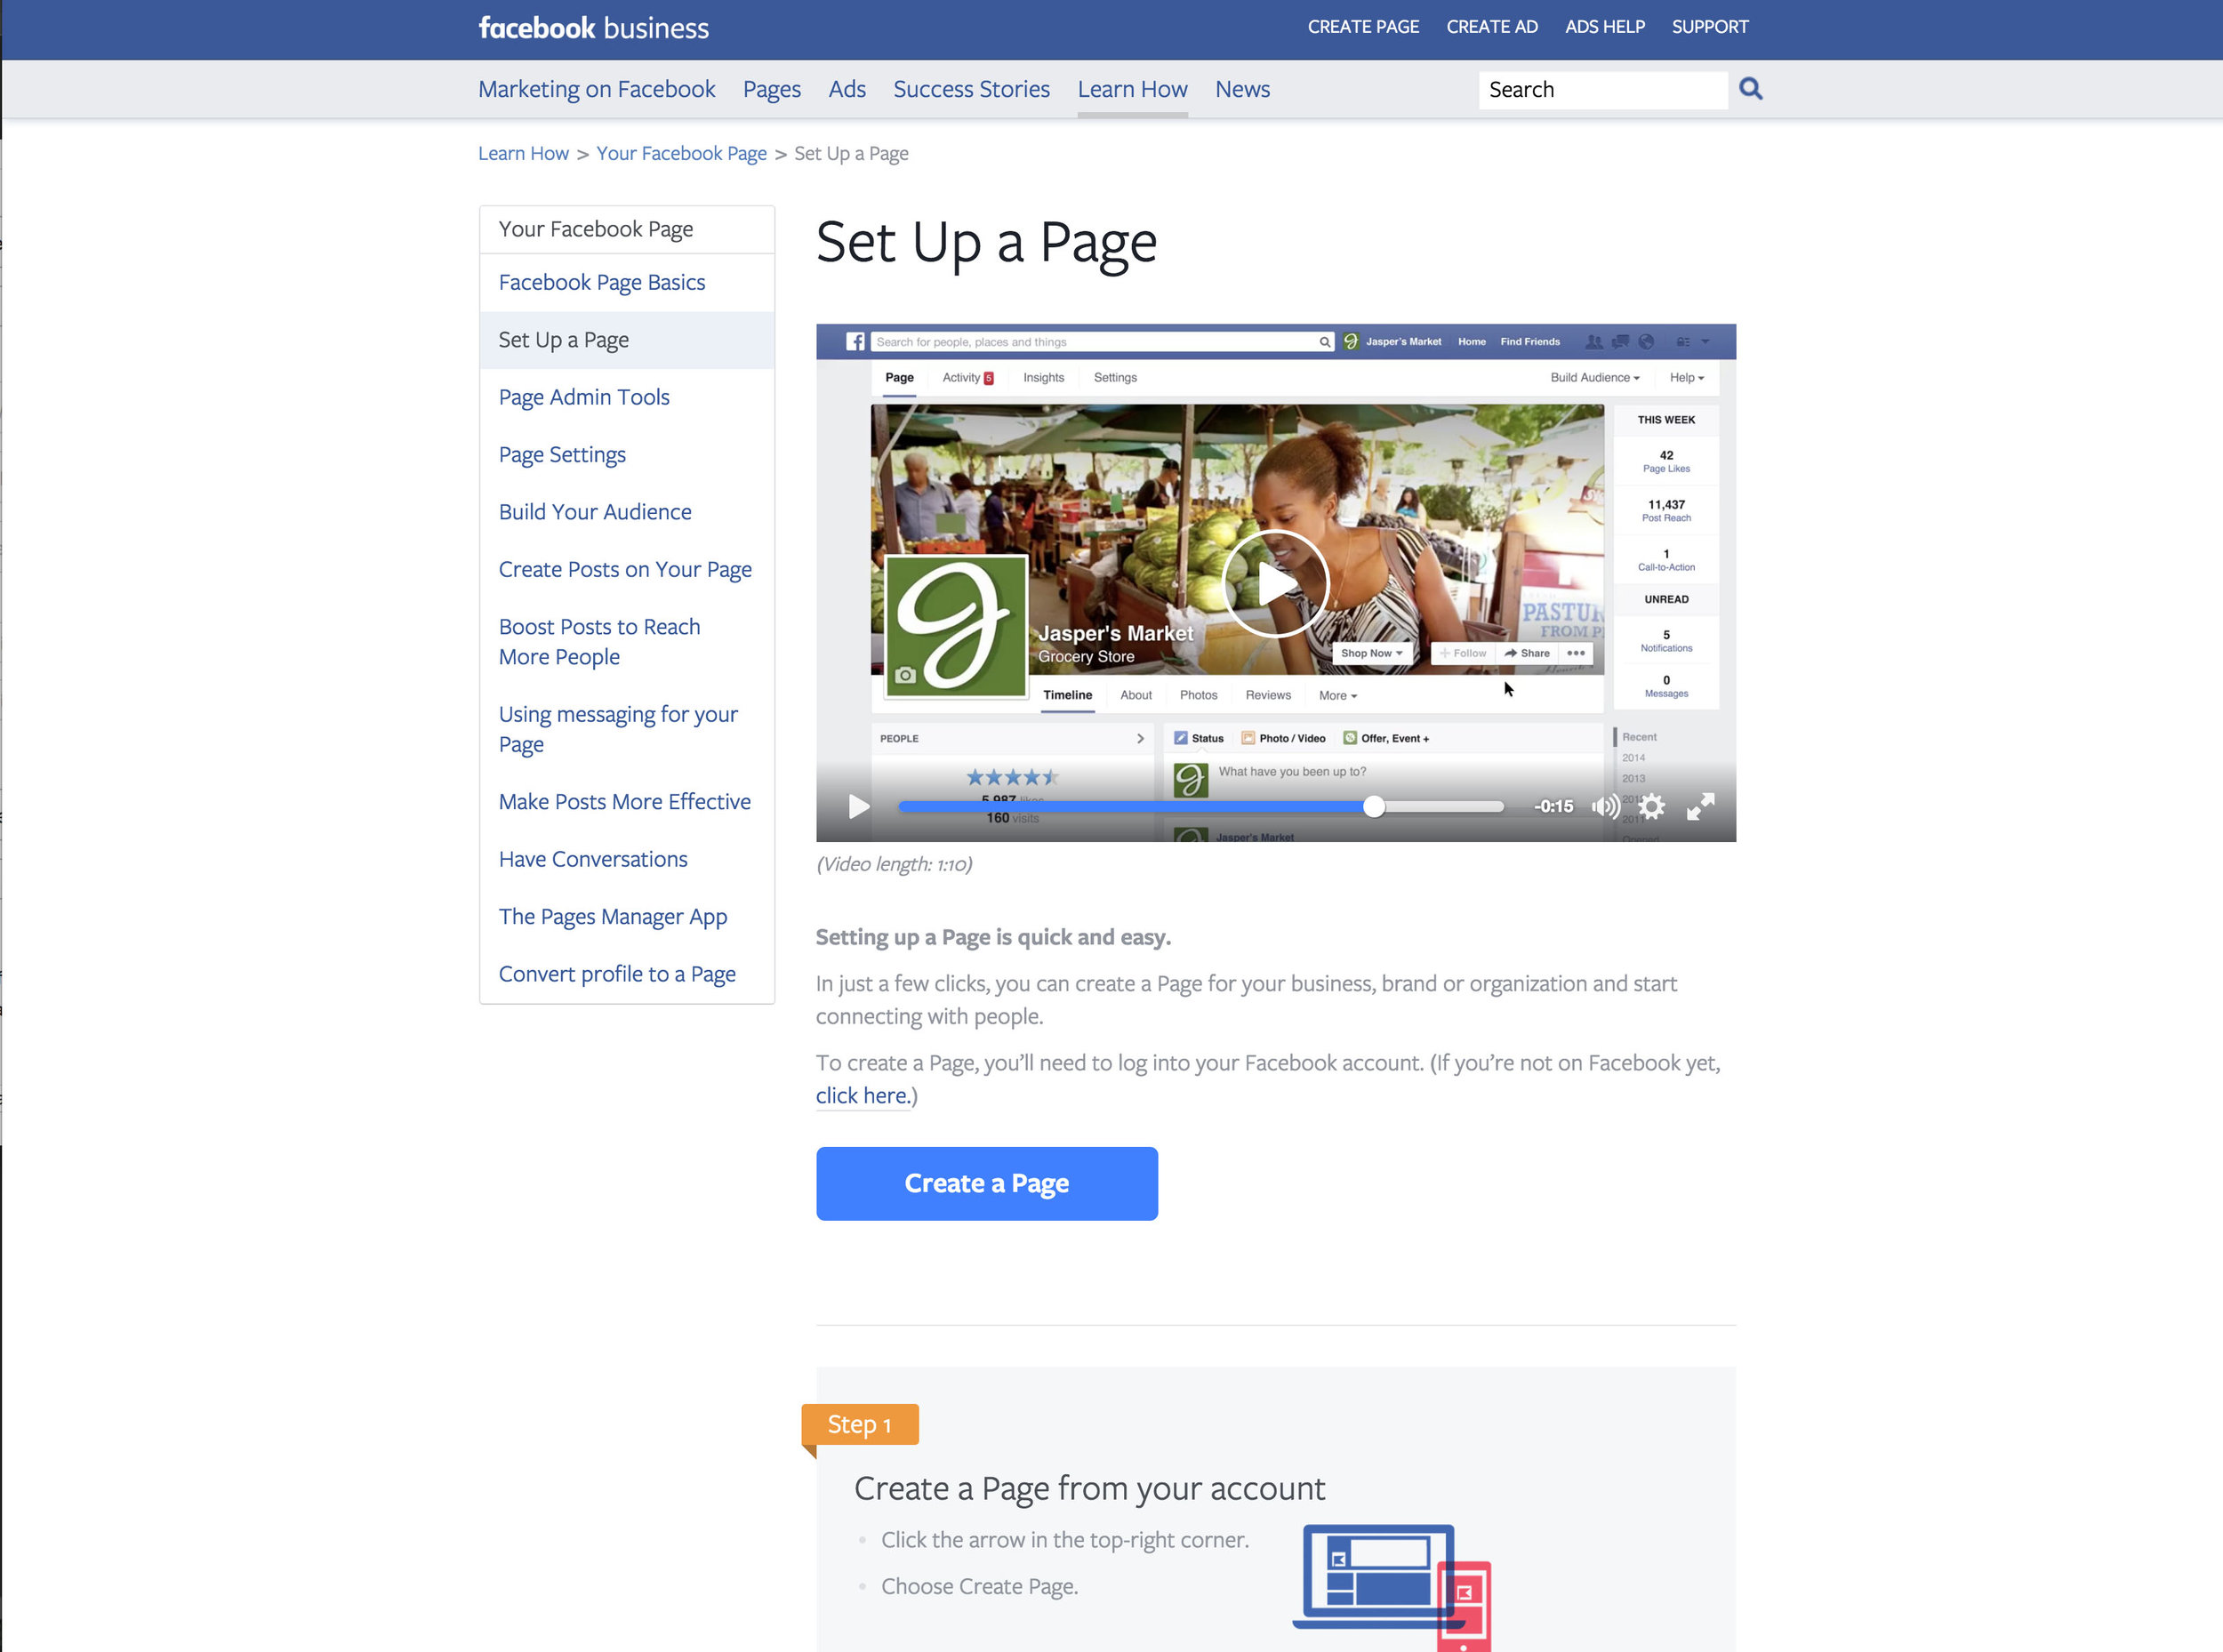 Click on Image to Learn How to set up a business facebook page